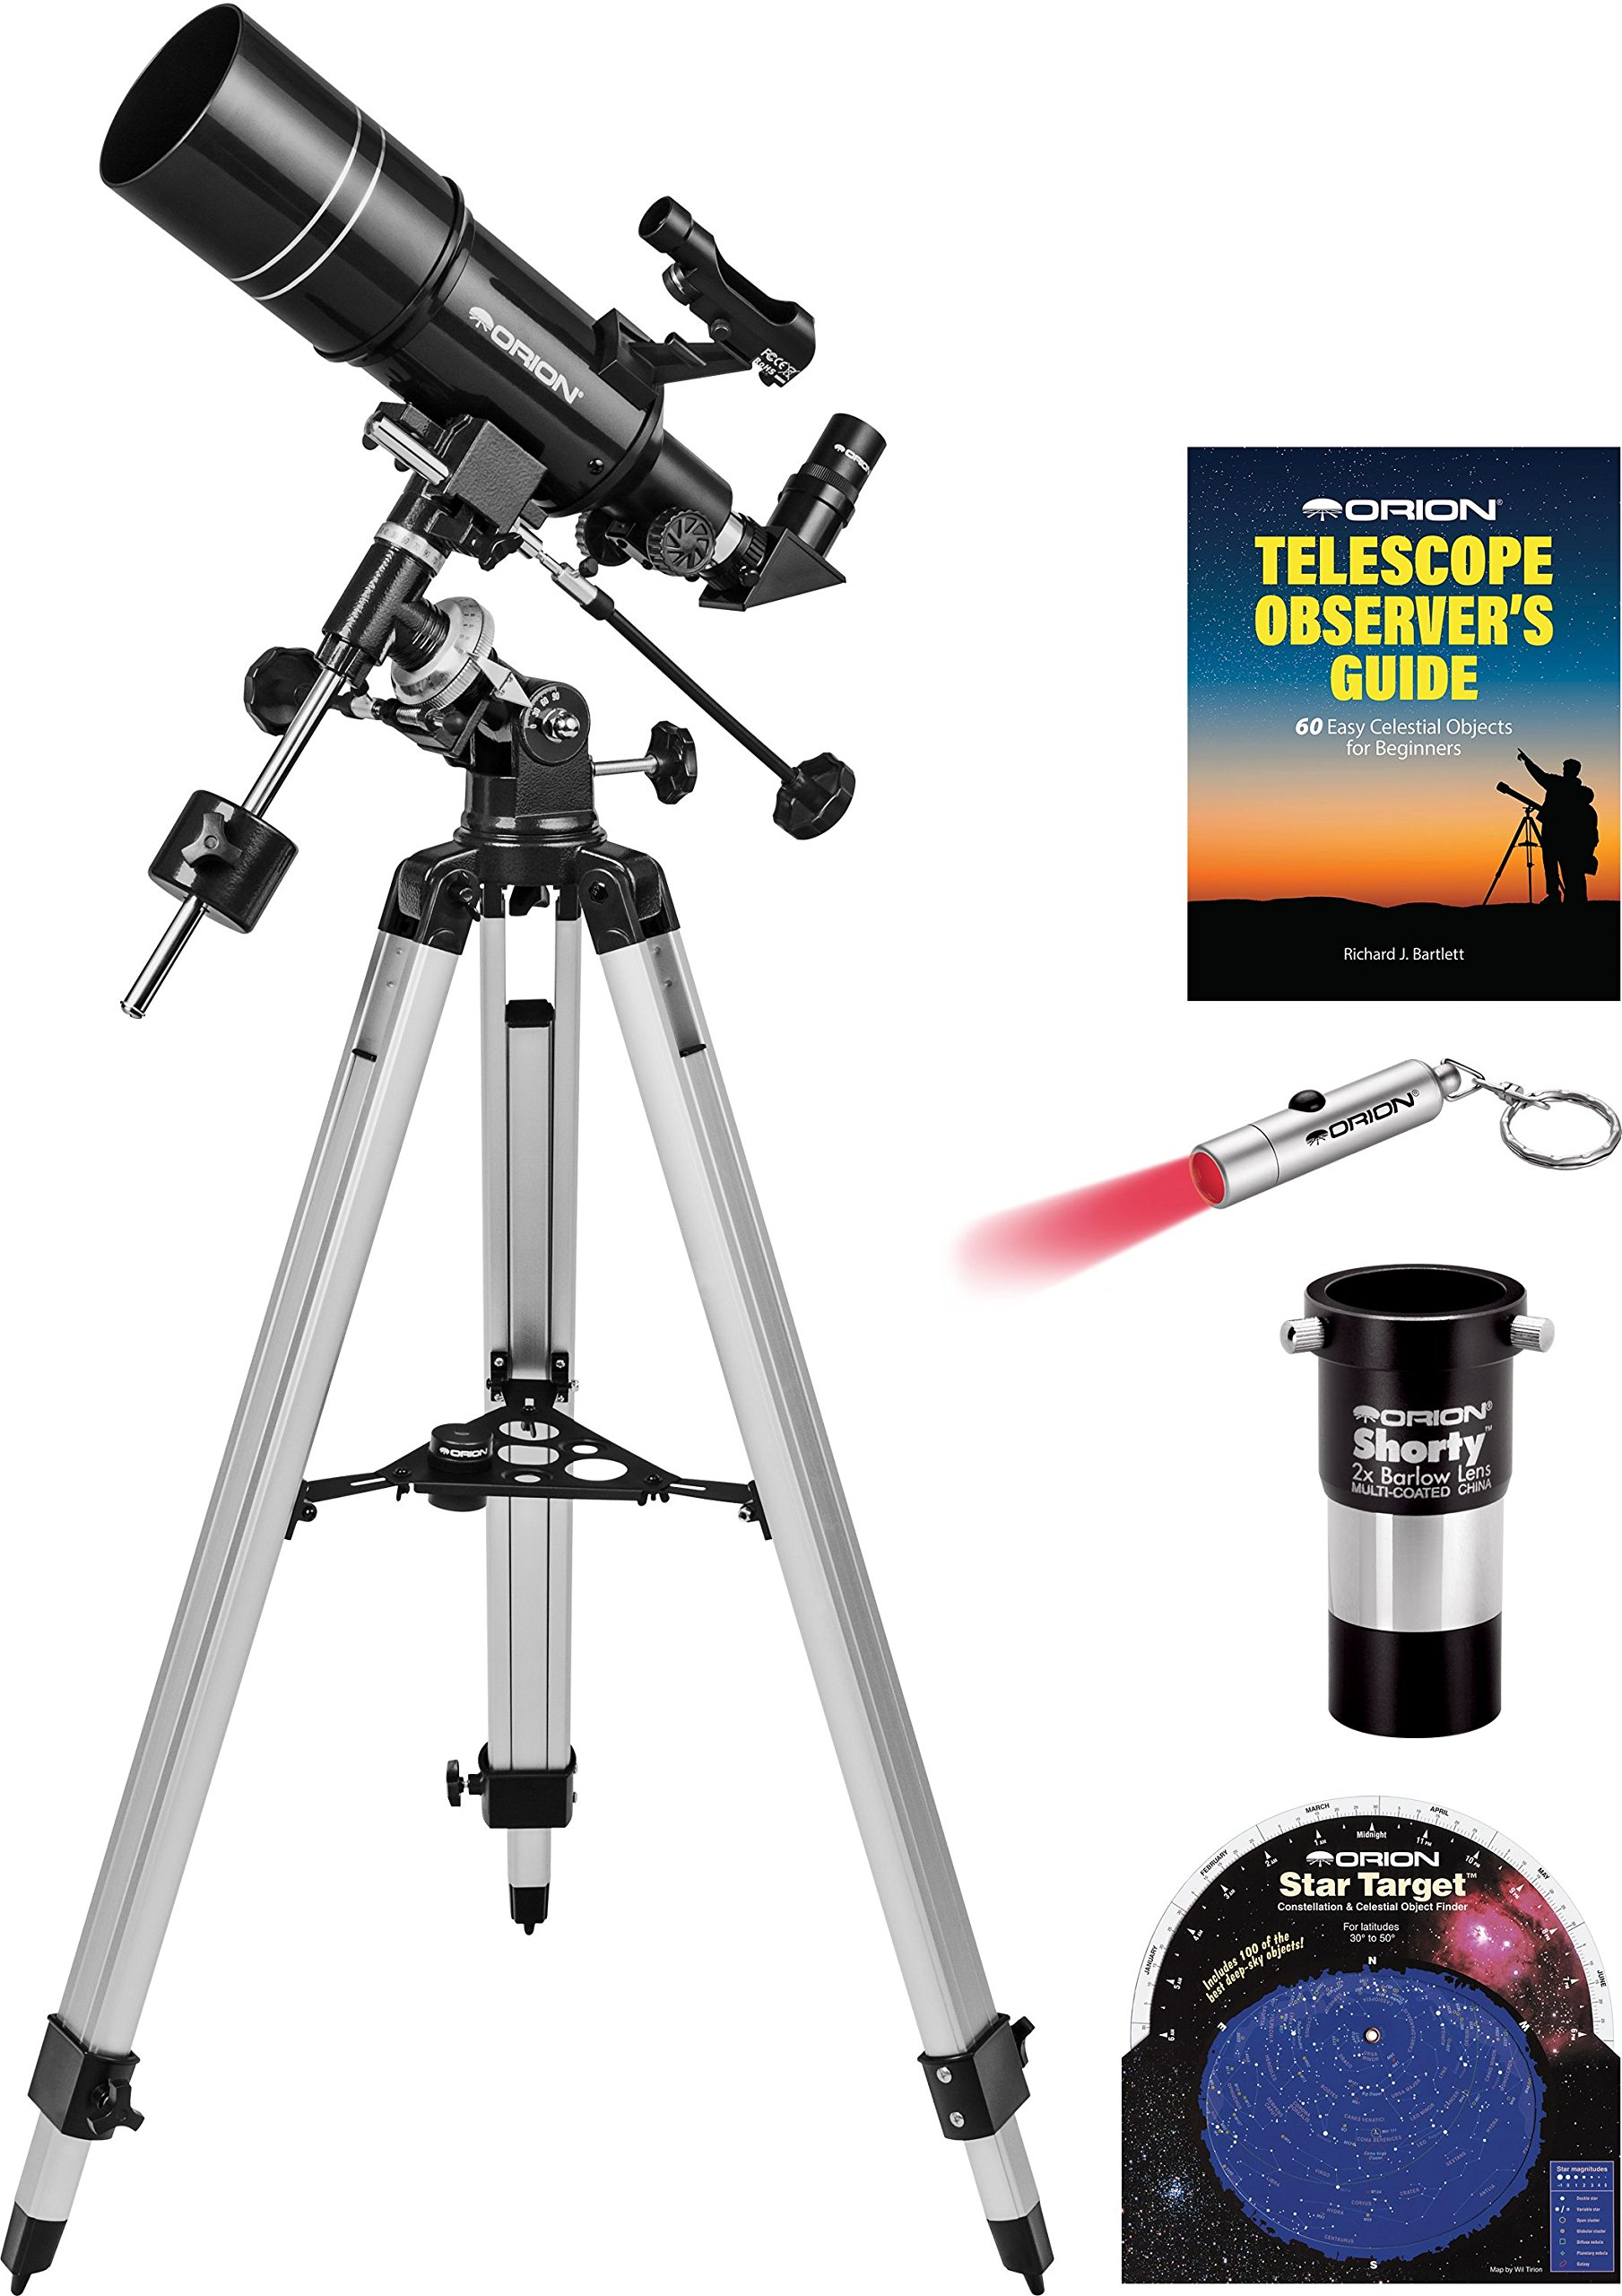 Orion Observer 80ST 80mm Equatorial Refractor Telescope Kit by Orion